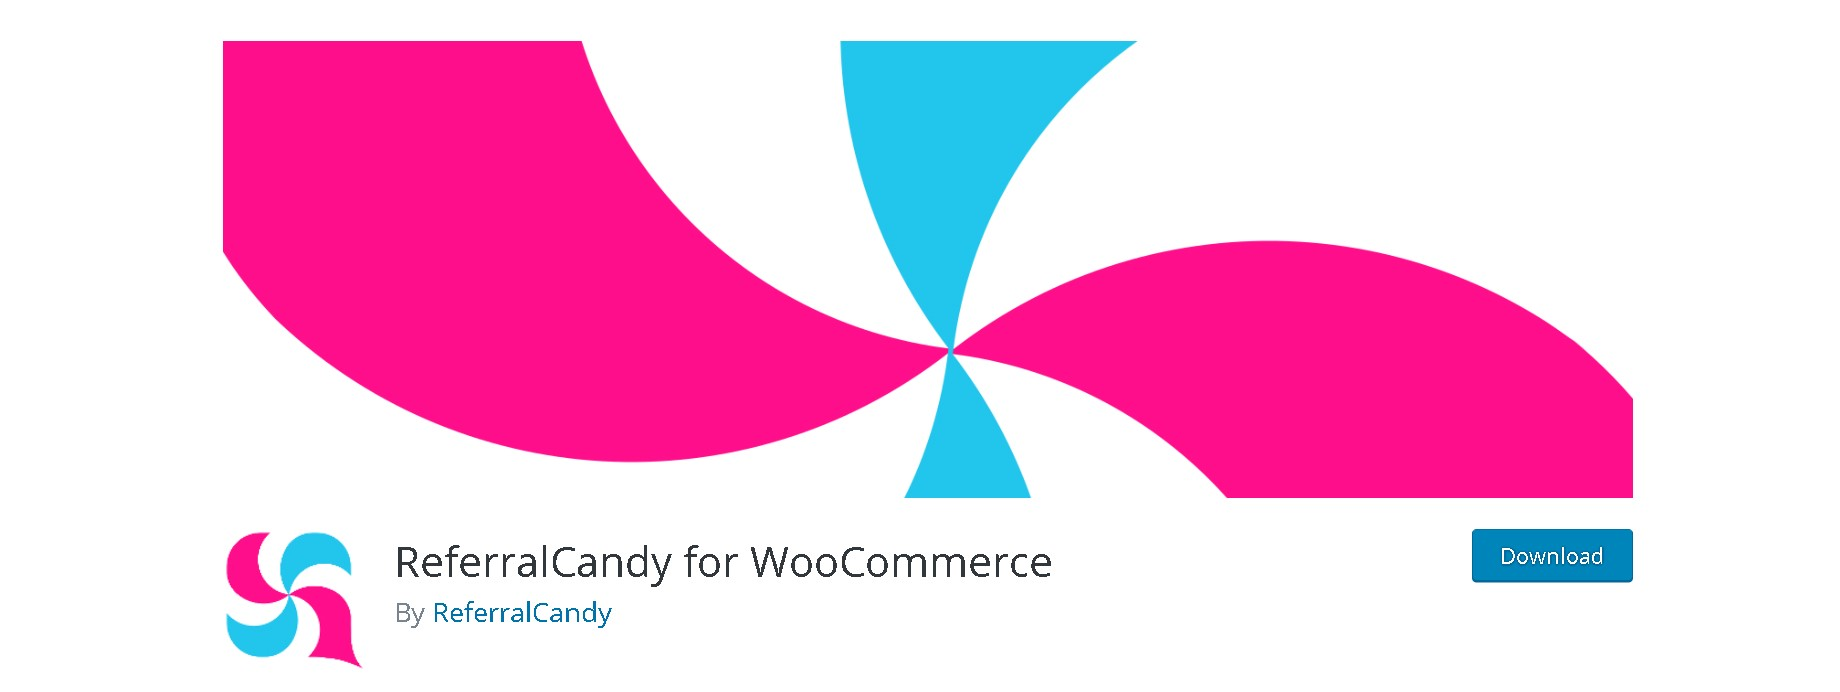 Referral candy for woocommerce